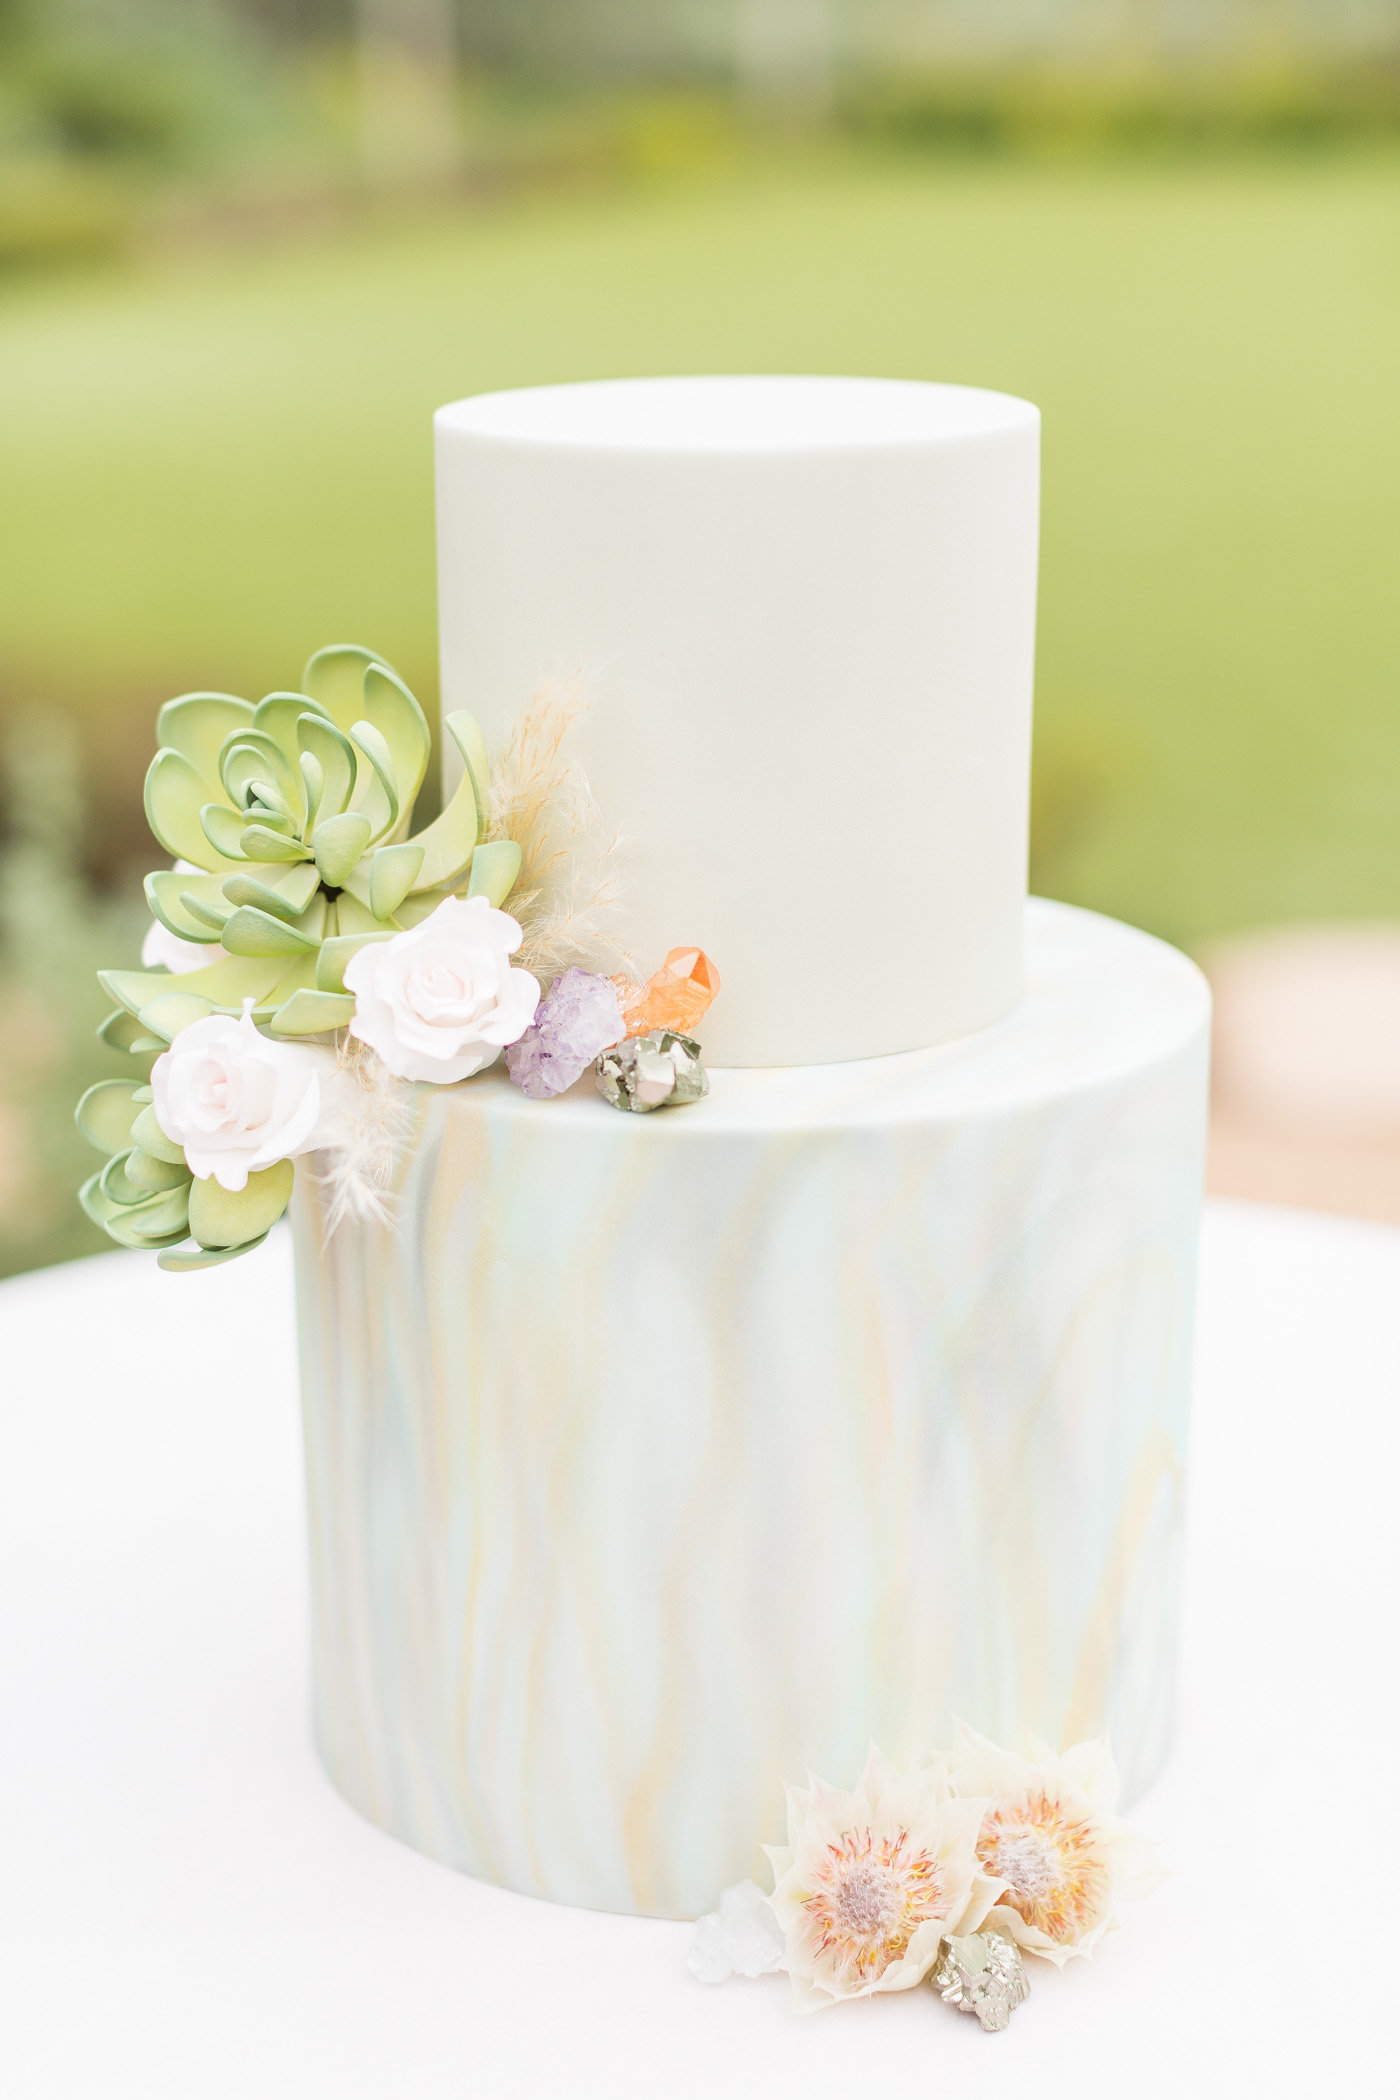 wedding cake with marbled effect - photo by Karlee K Photography http://ruffledblog.com/cheerful-desert-wedding-inspiration-with-bright-yellow